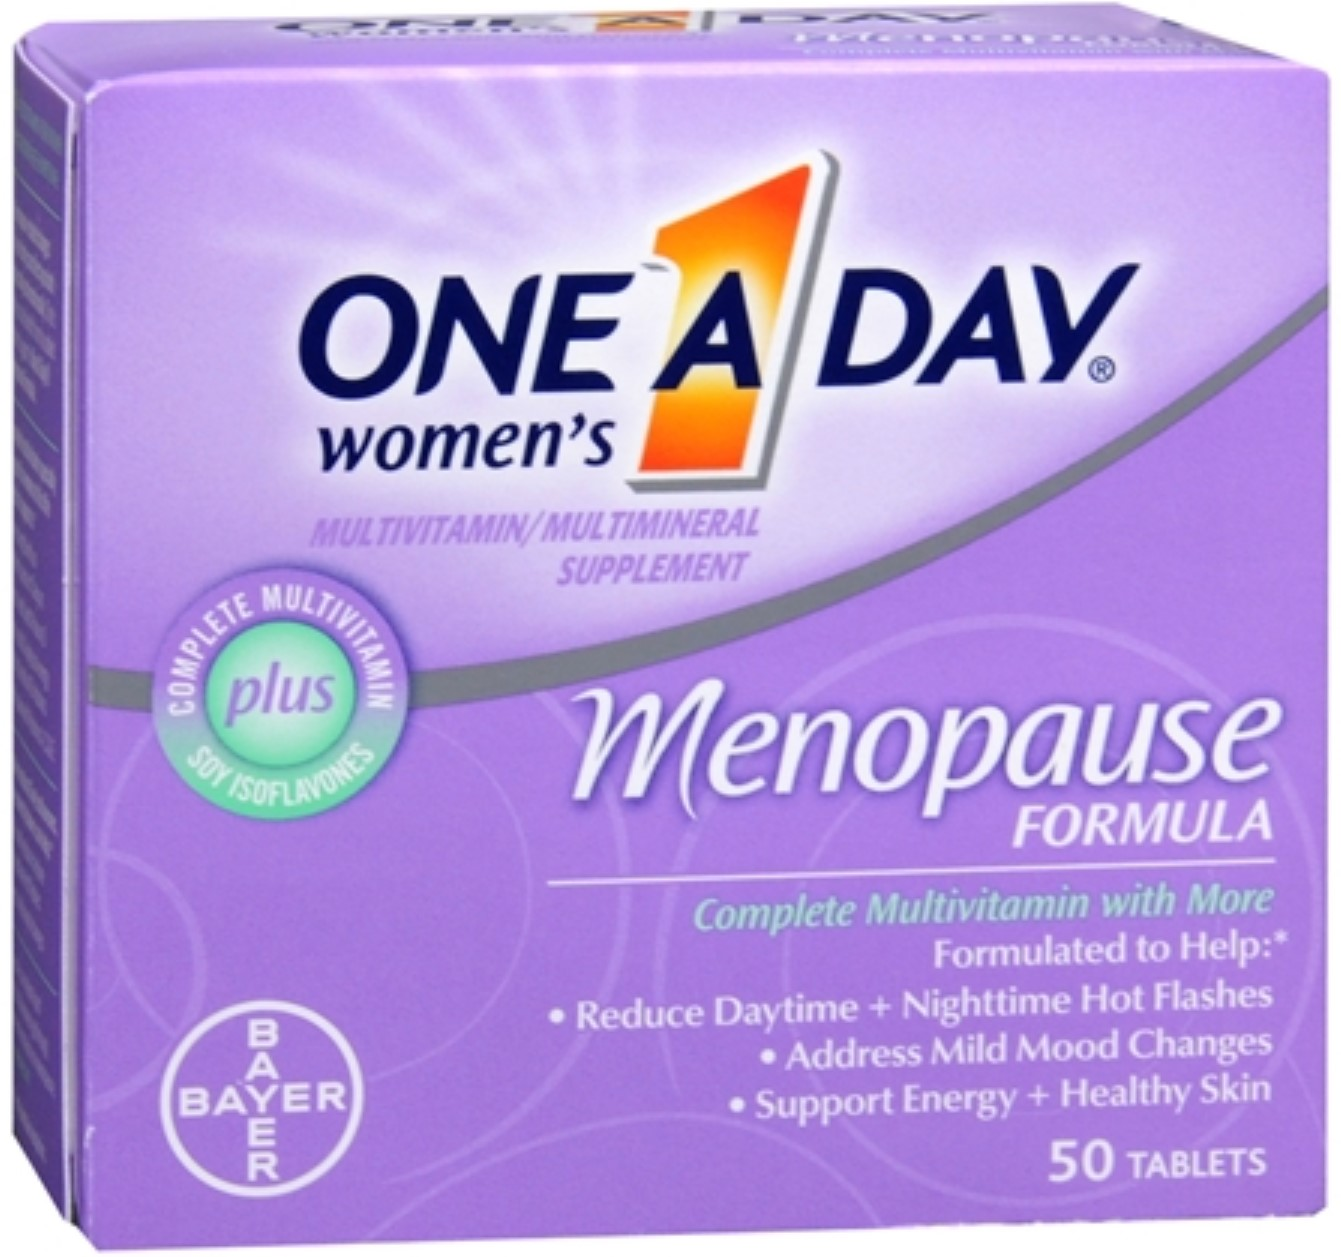 One-A-Day Menopause Formula Complete Women's Multivitamin 50 Tablets (Pack of 2)